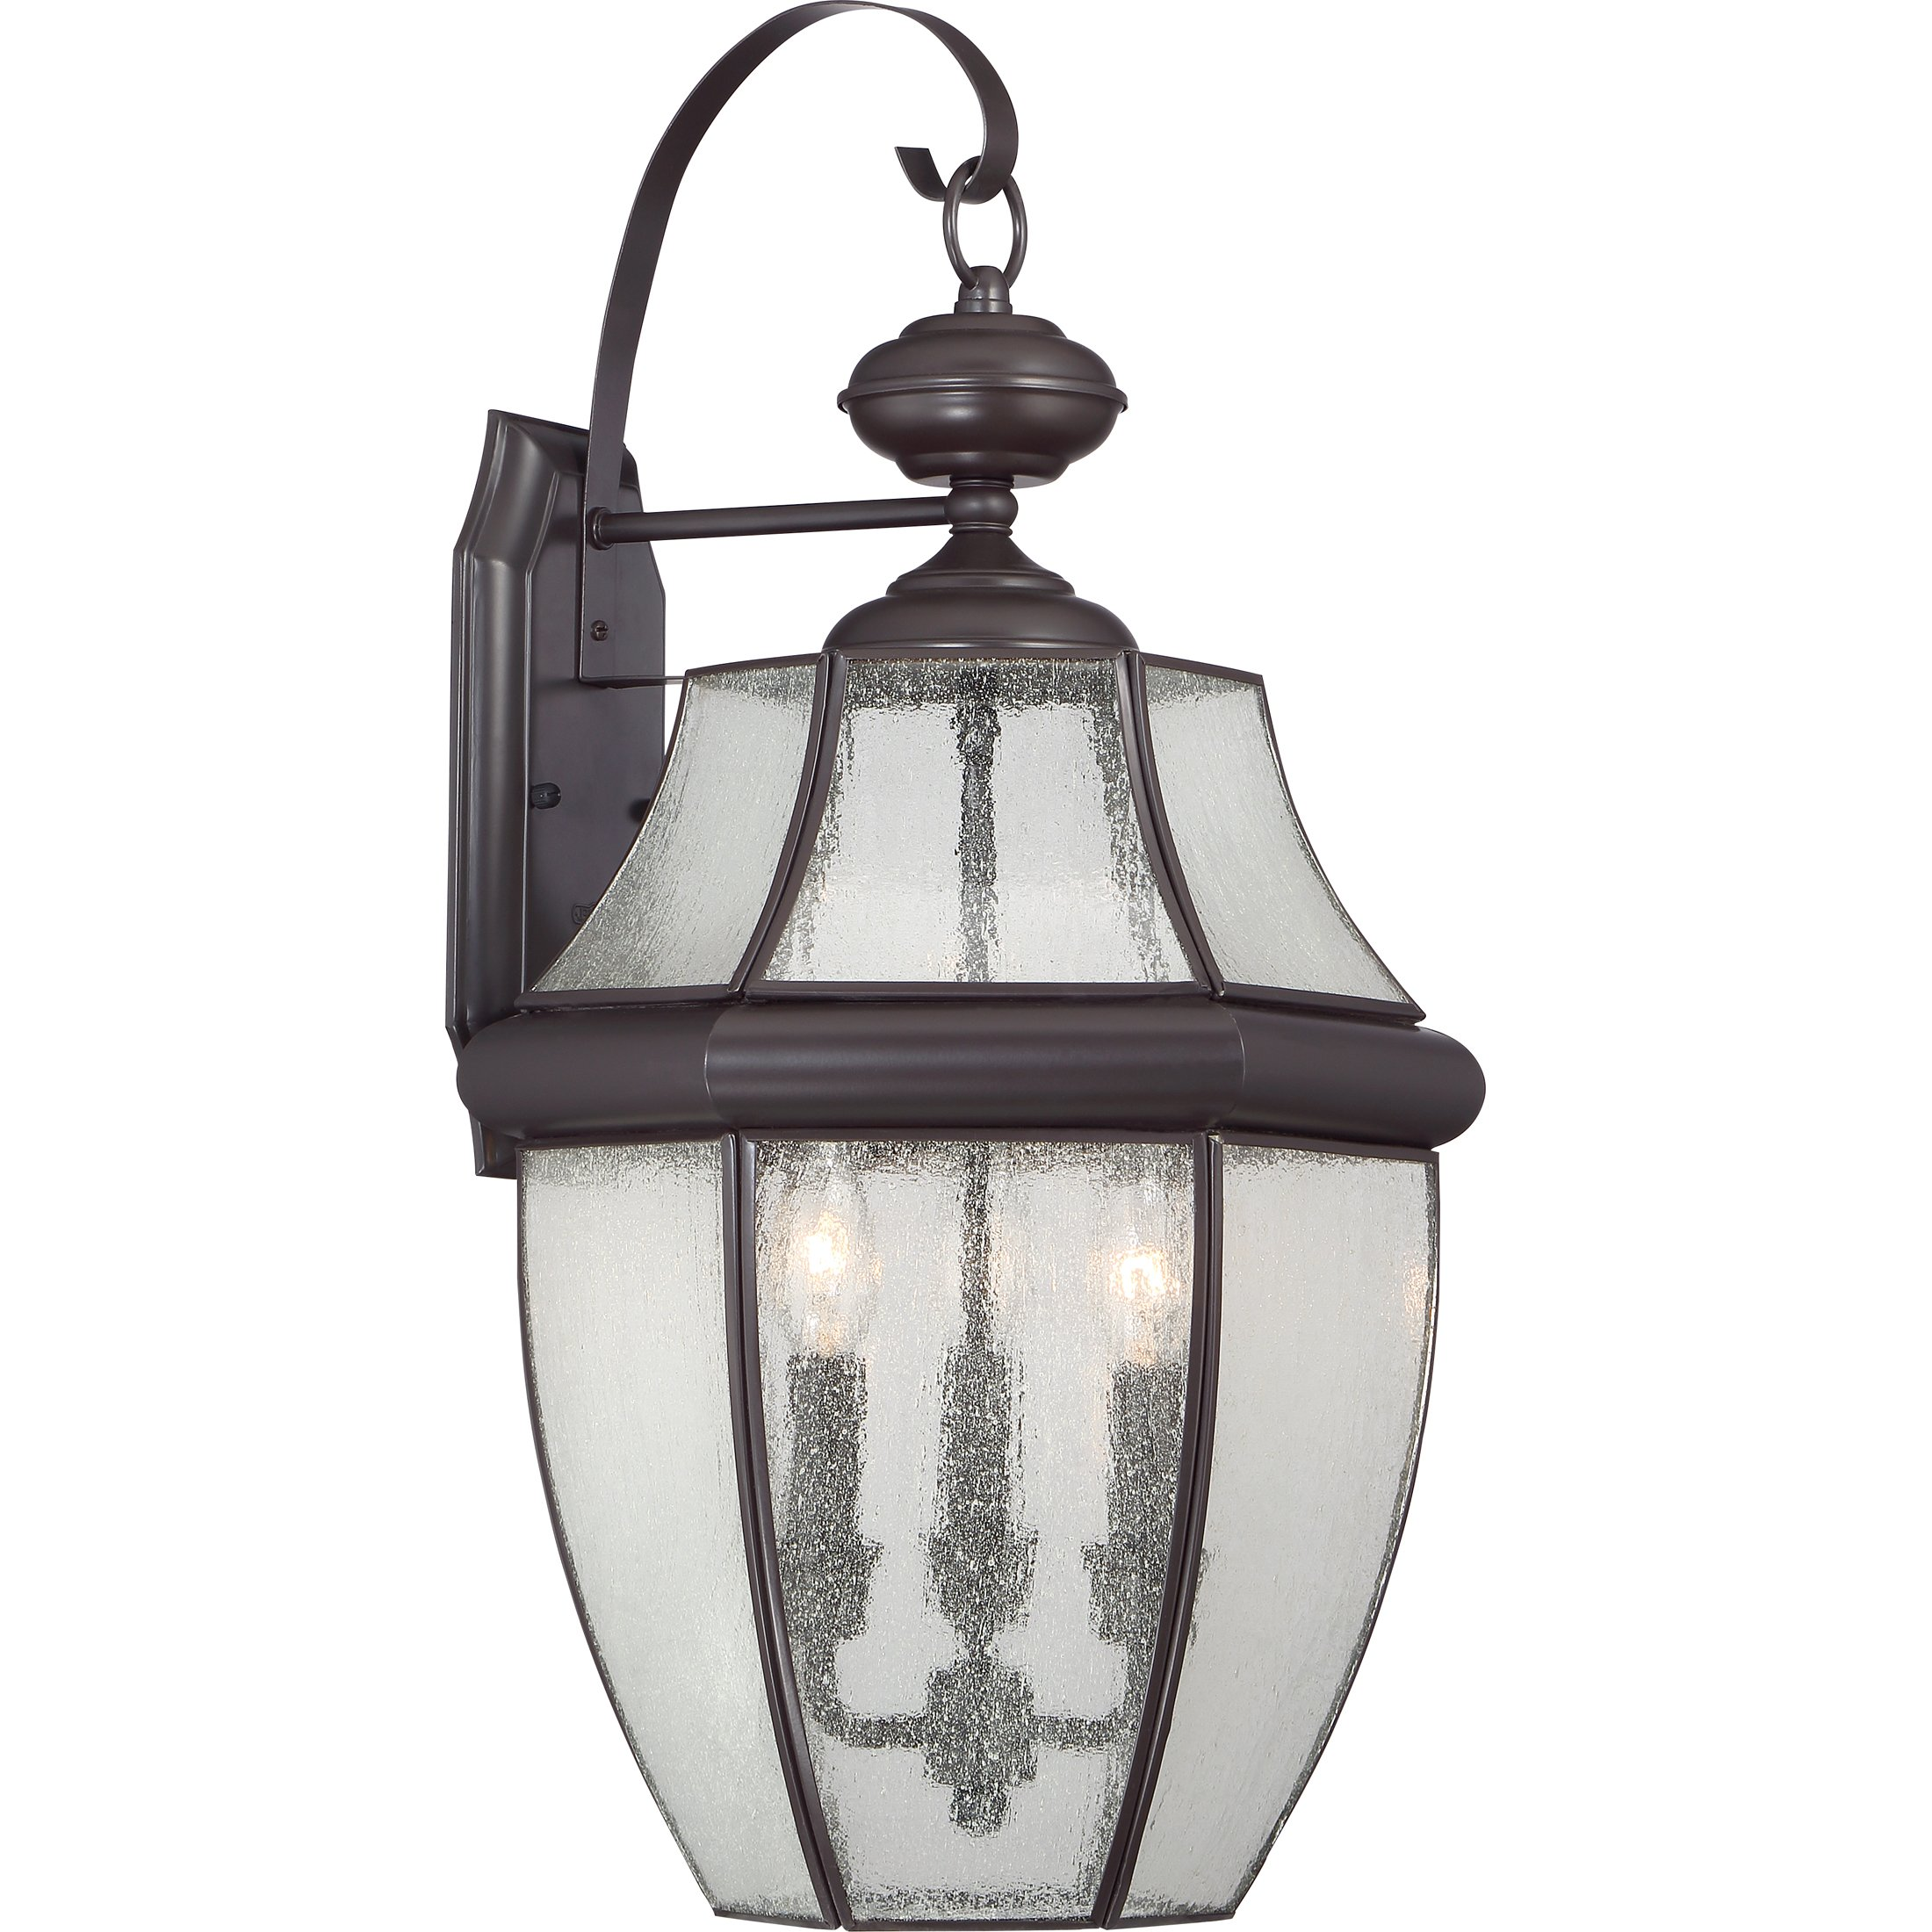 Quoizel NY8412Z  Newbury 3-Light Outdoor Lantern, Medici Bronze by Quoizel